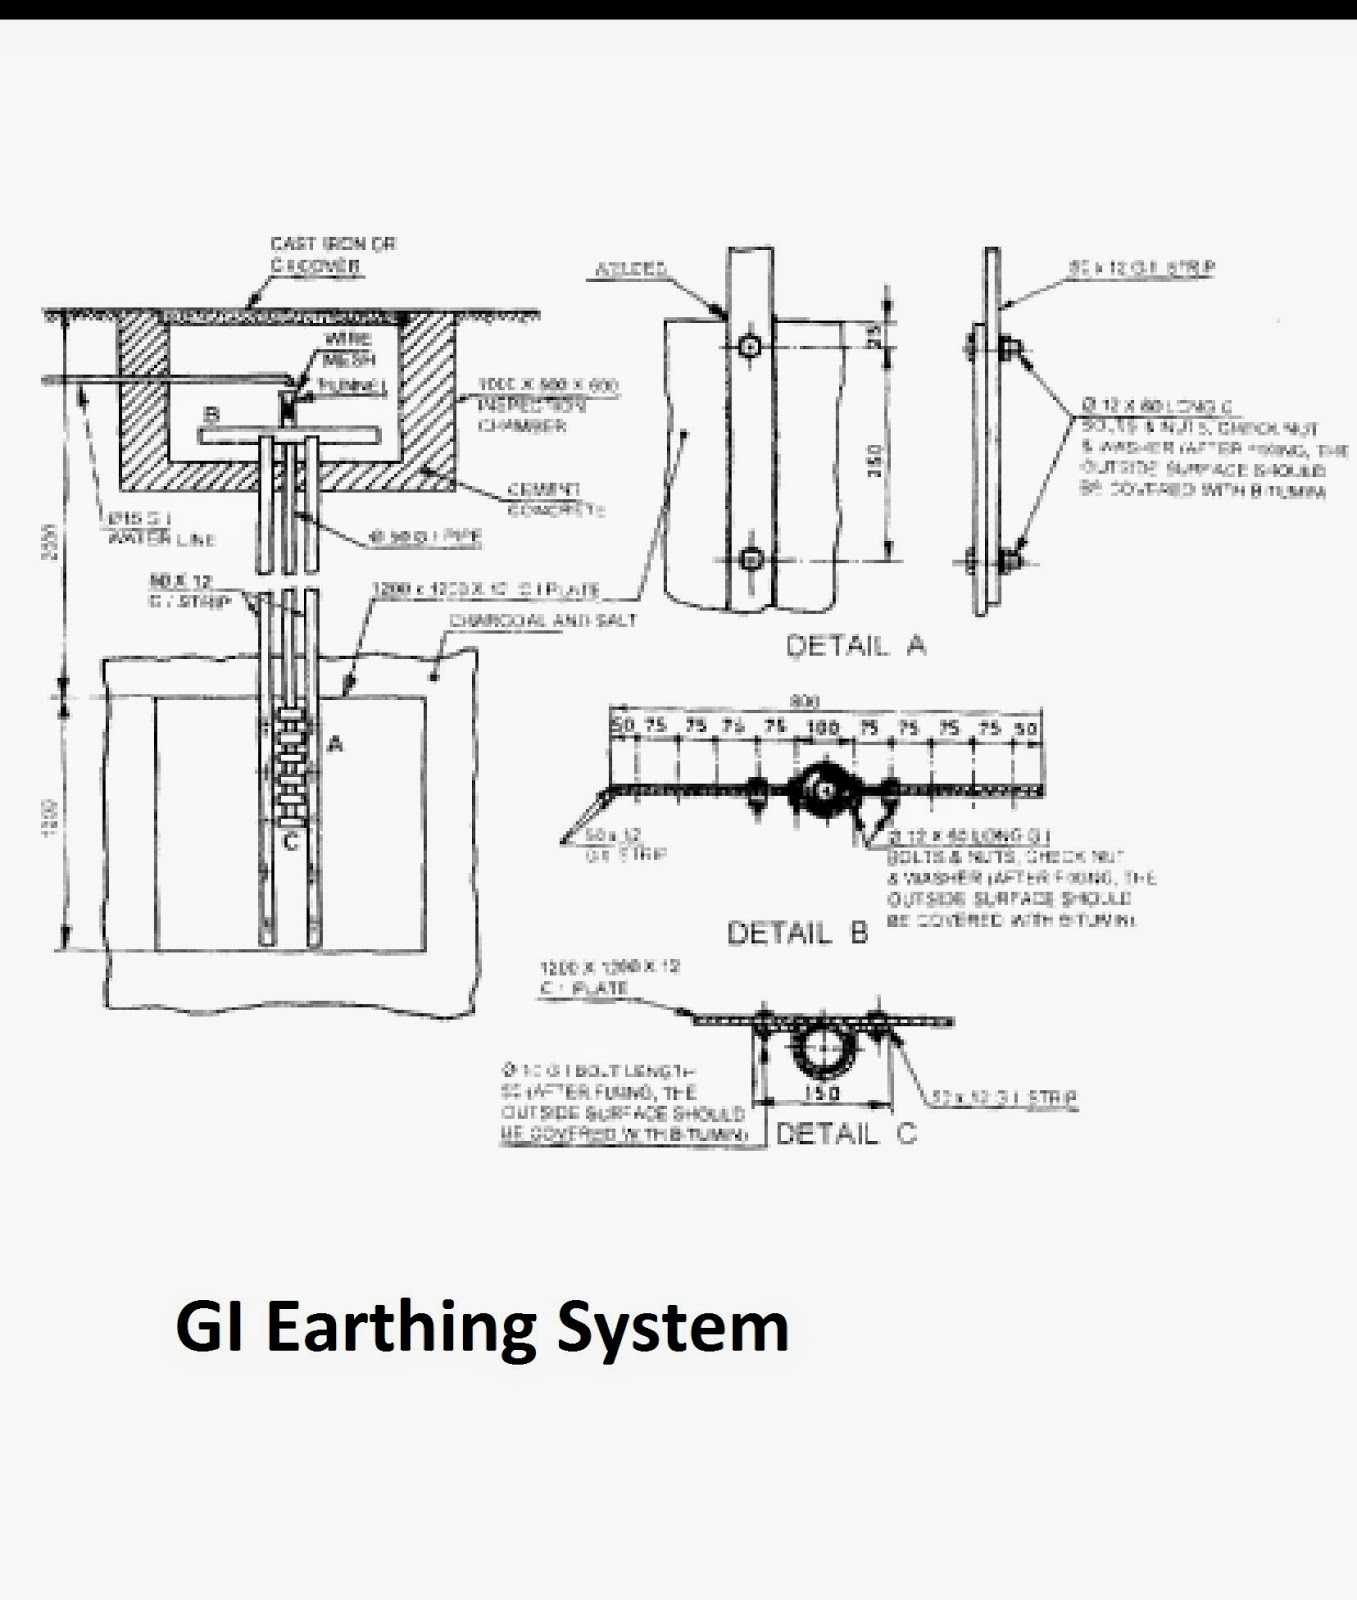 earthing for houses  u2013 types  u0026 methods of earthing